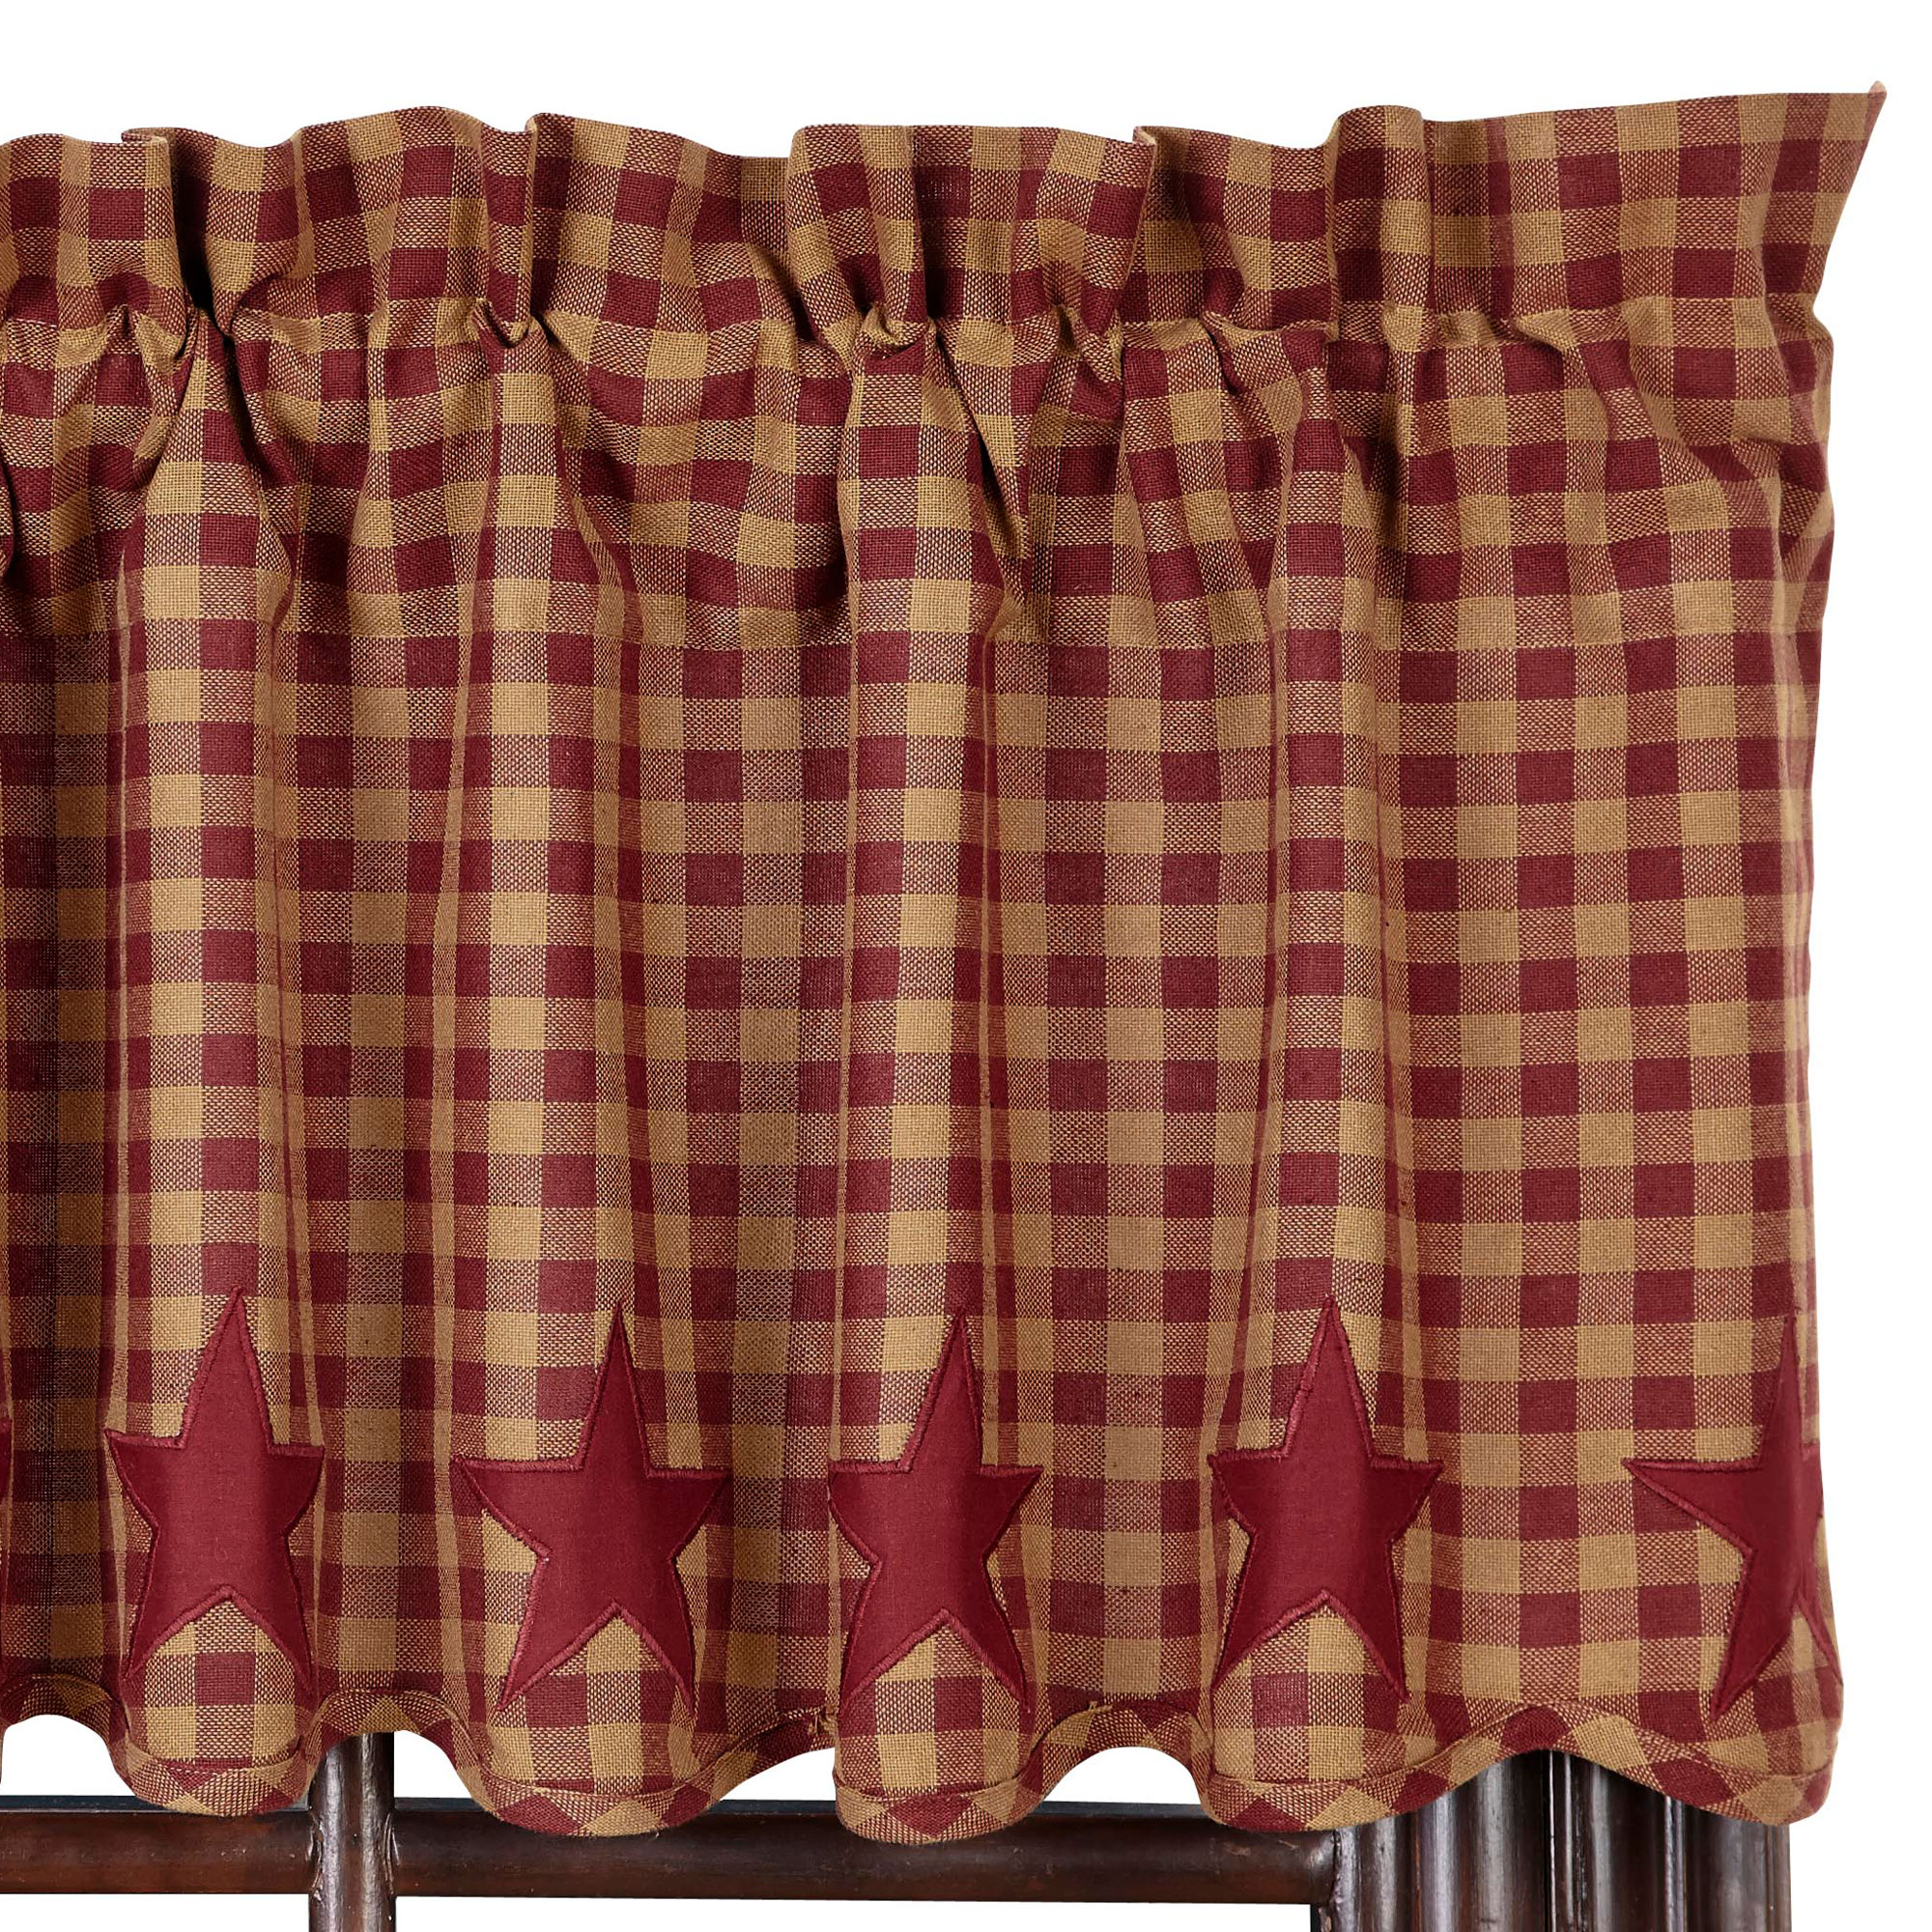 VHC-20169-Burgundy-Star-Scalloped-Valance-LRG